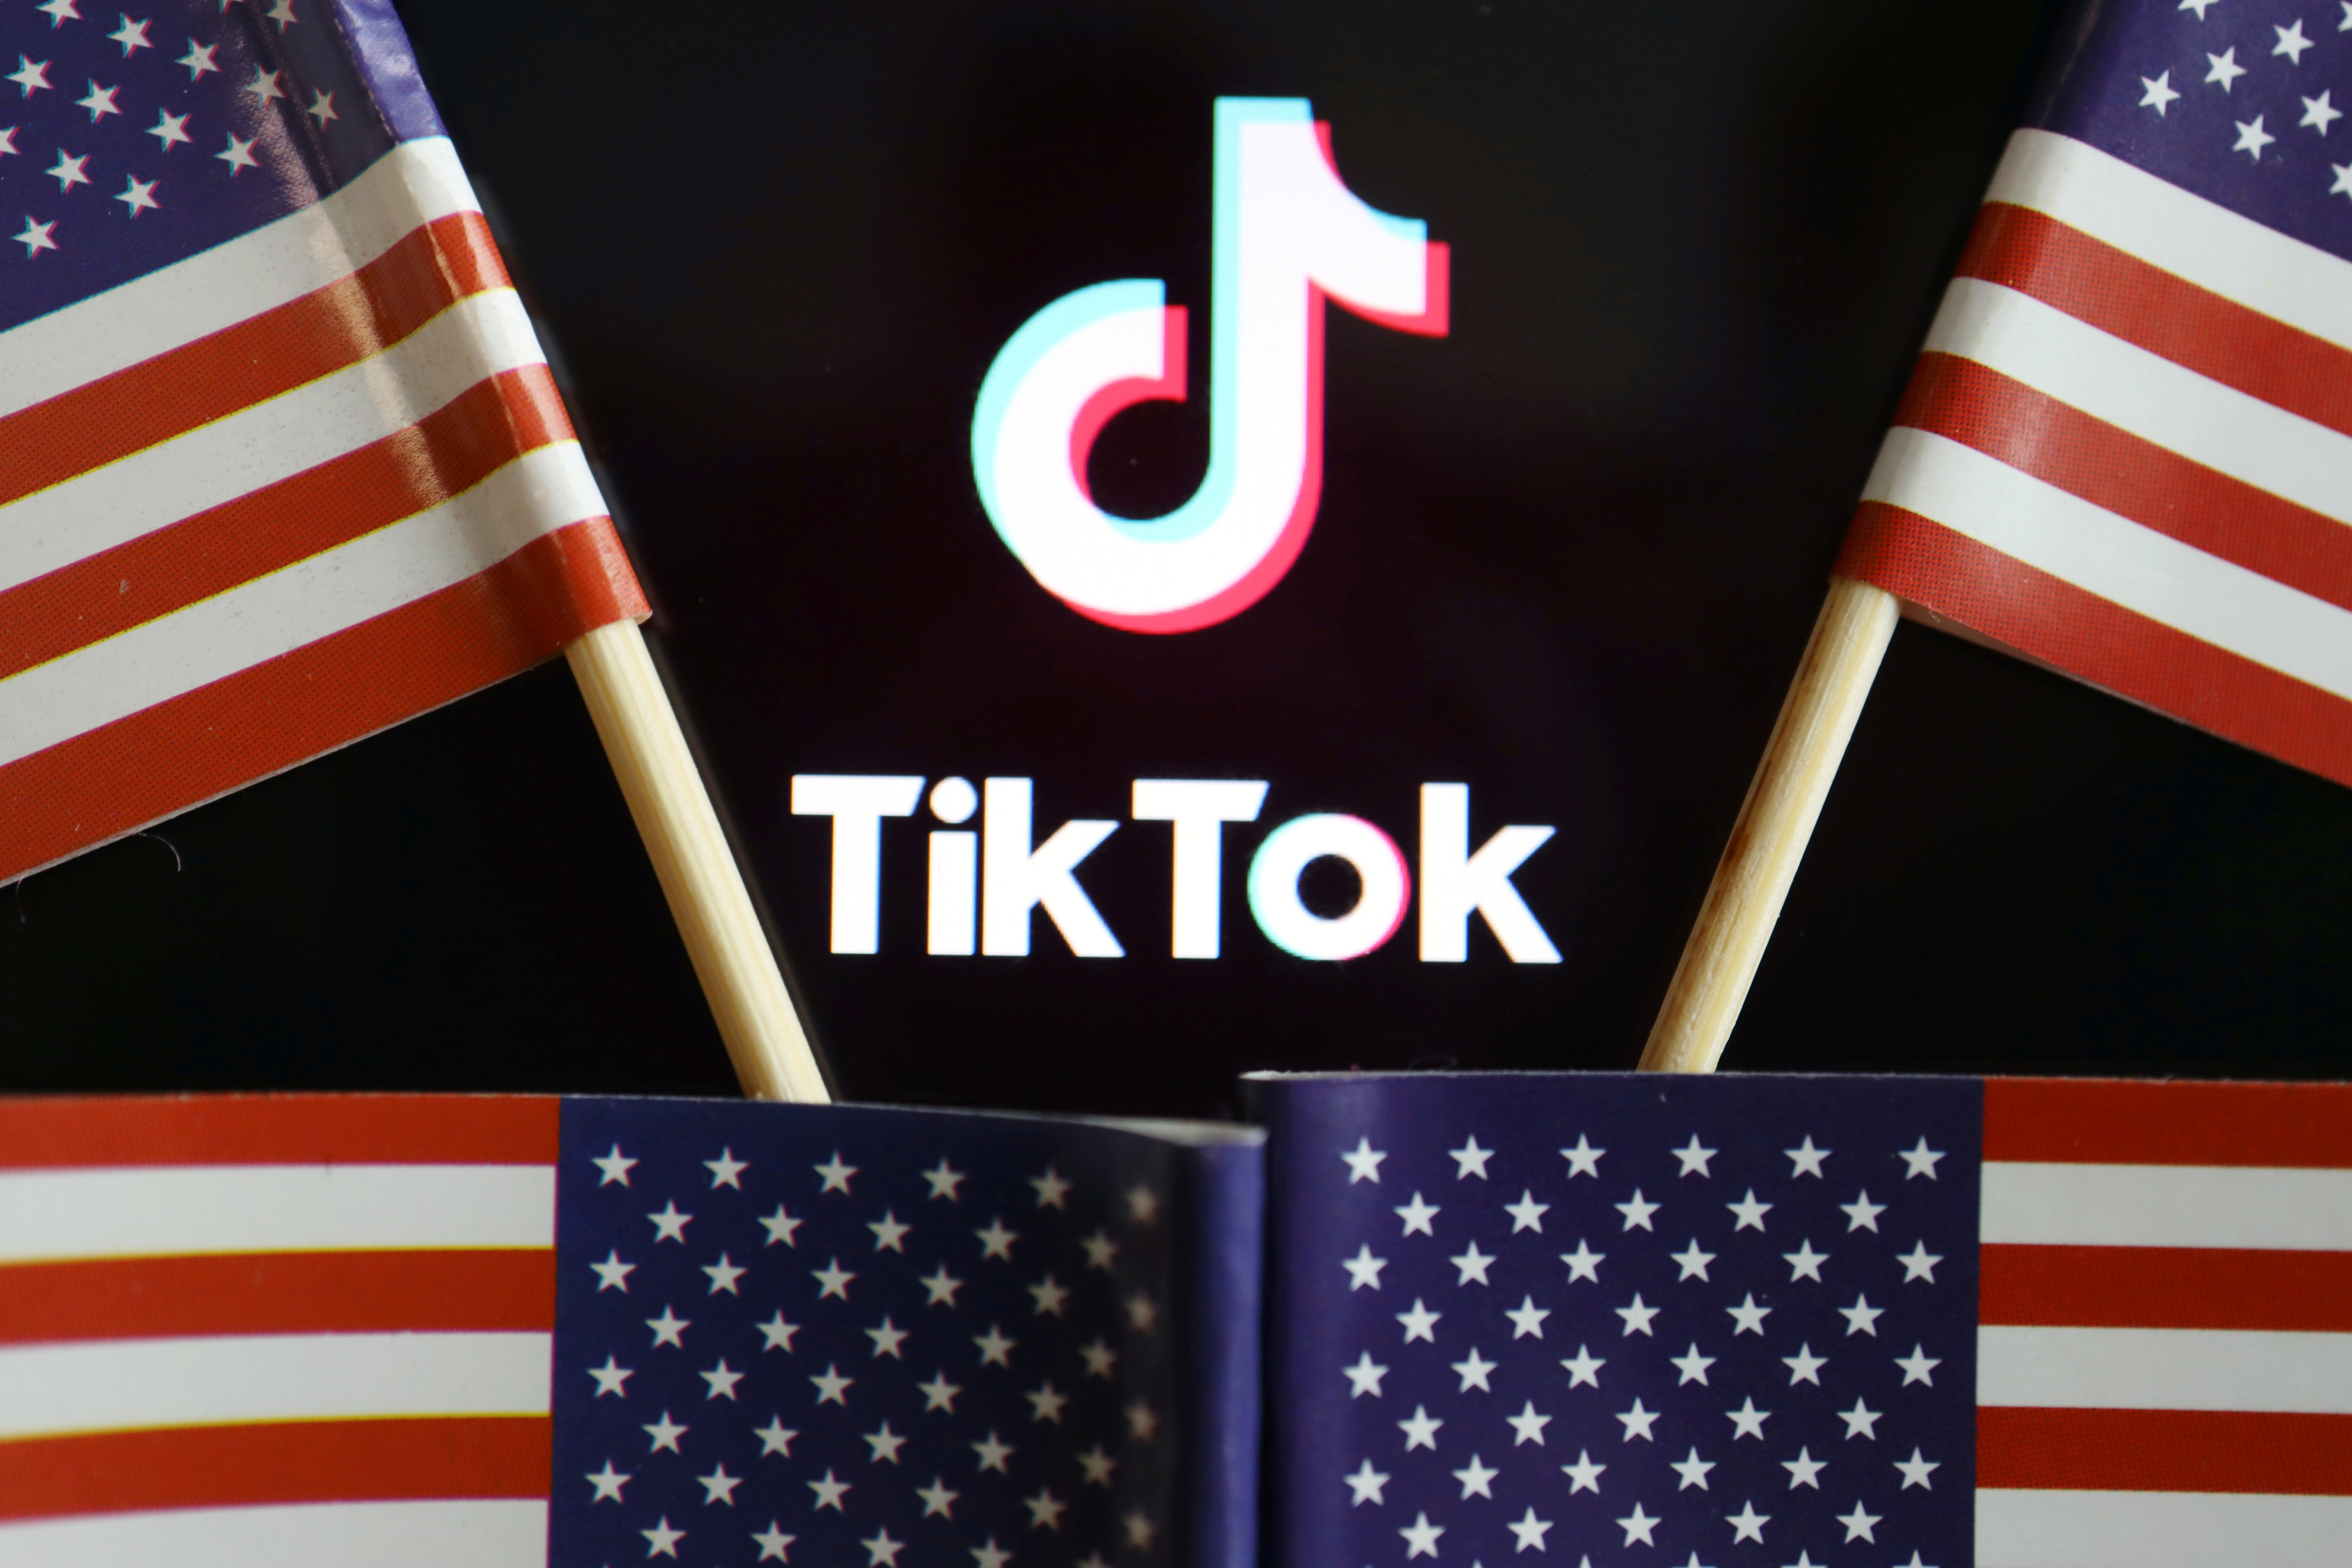 TikTok ban could cut it off from app stores, advertisers